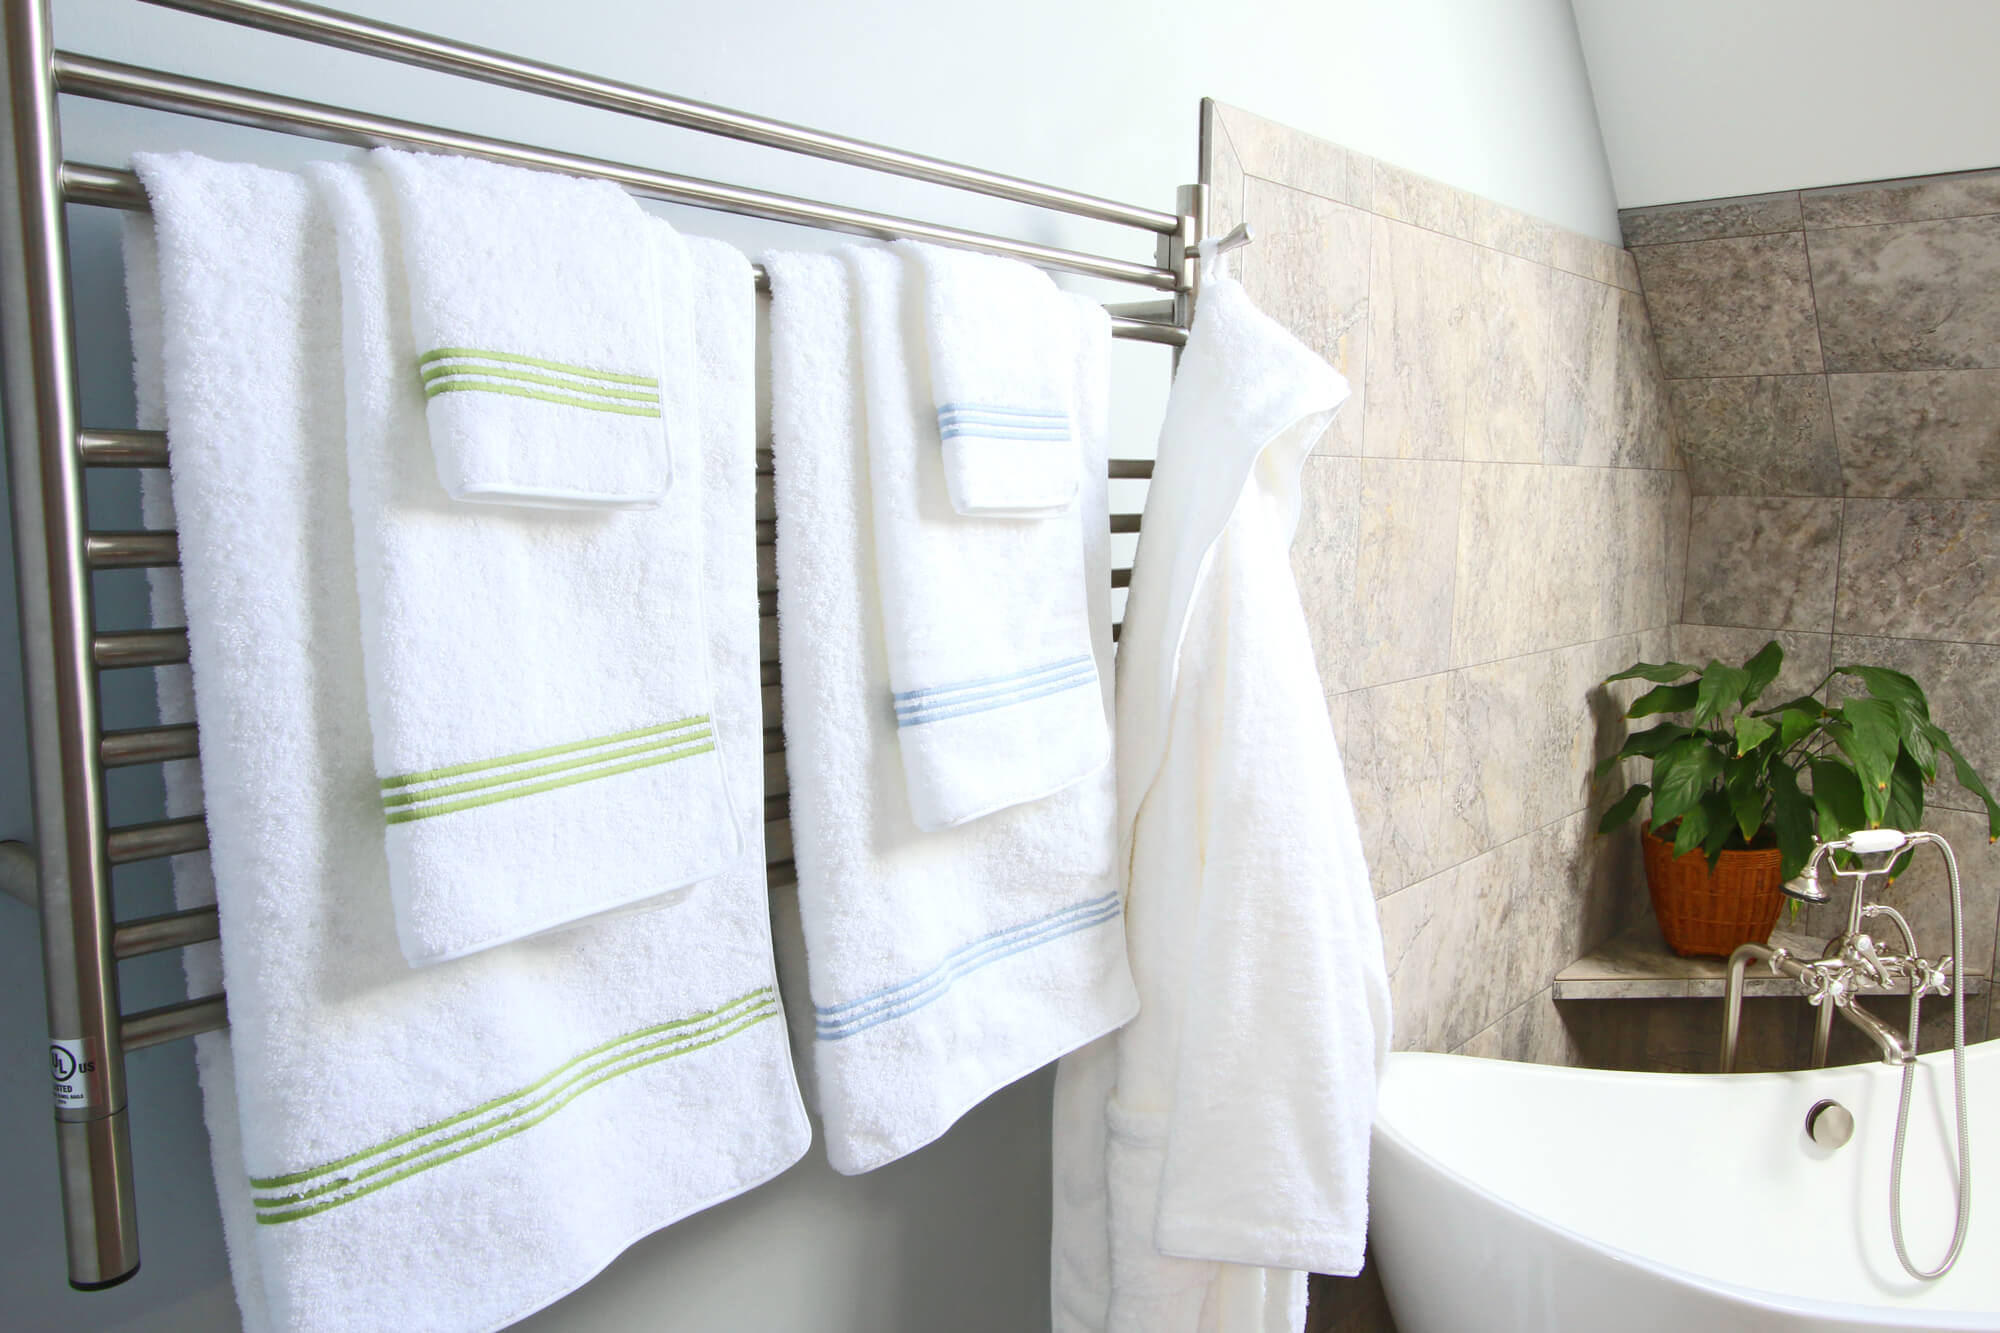 Awesome Amba Towel Warmers for Best Tower Warmer Inspiration: Towel Racks Home Depot | Free Standing Heated Towel Rack | Amba Towel Warmers